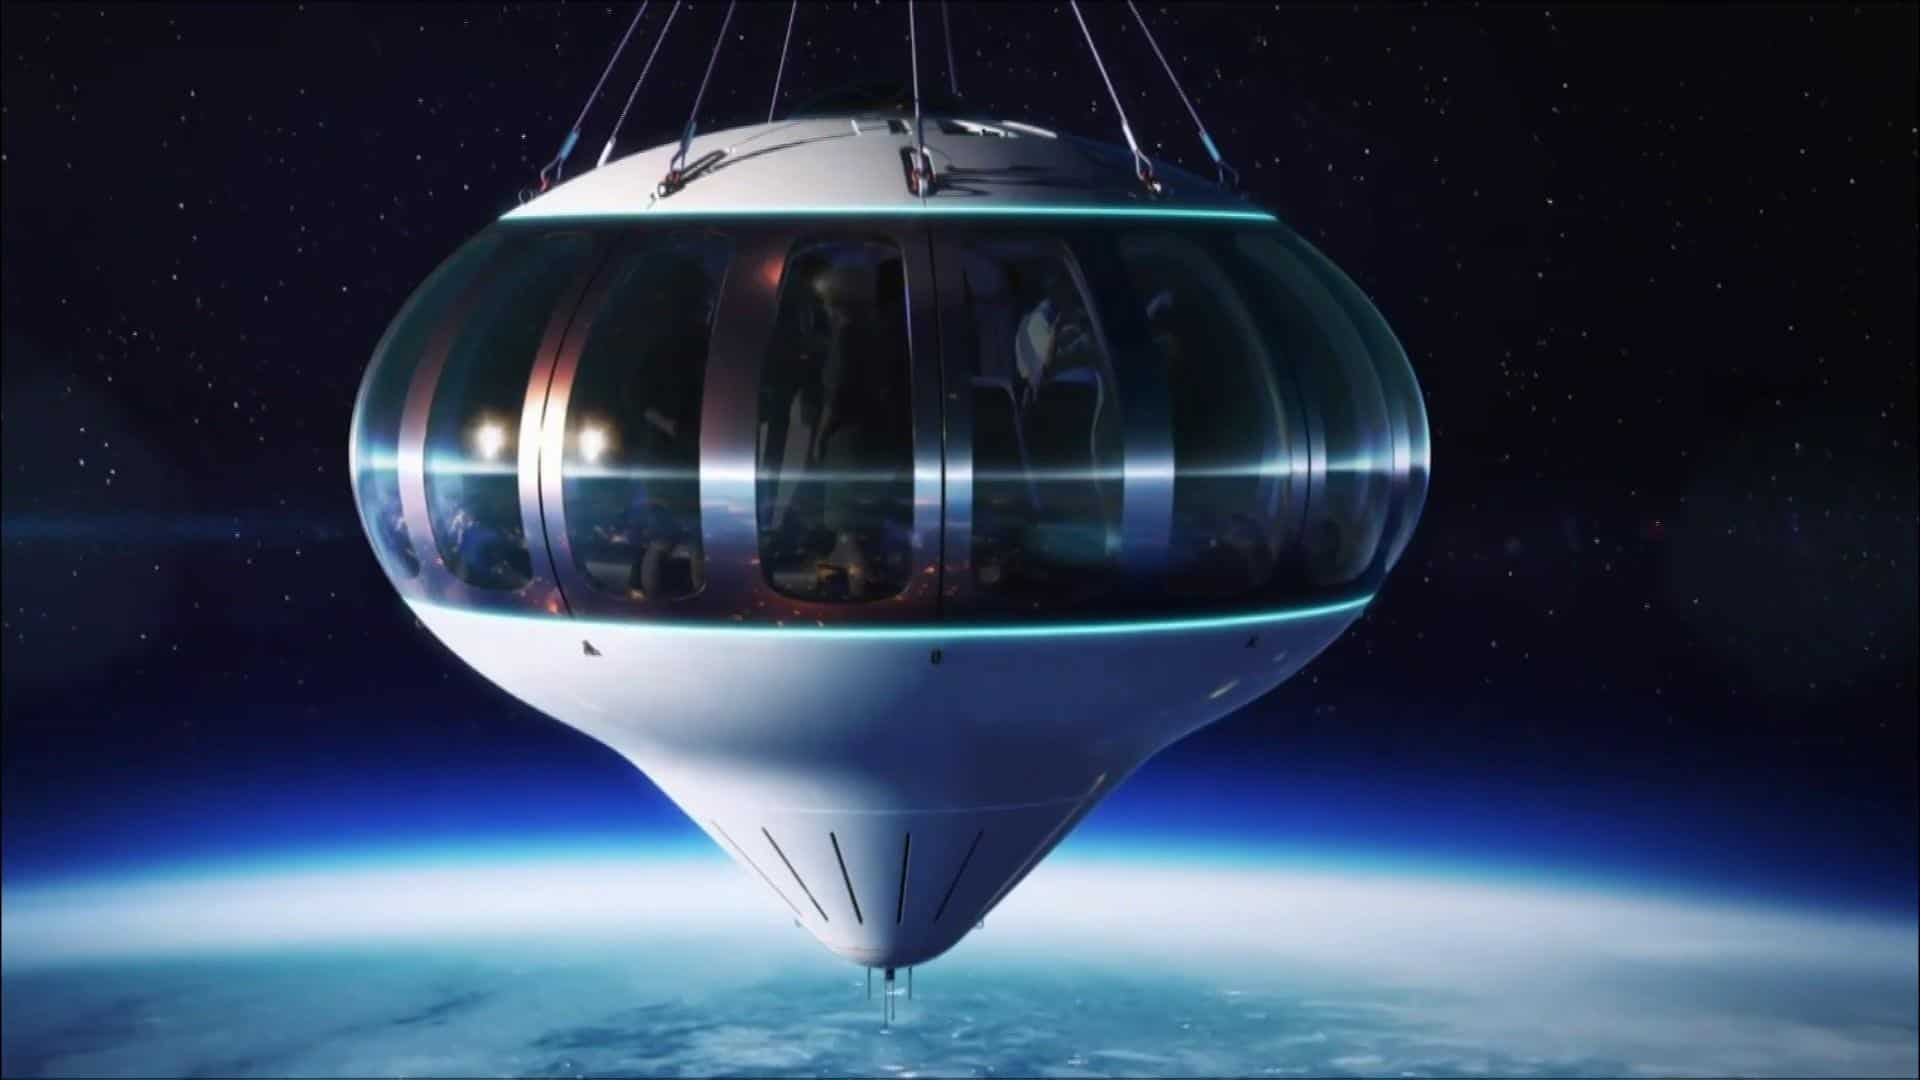 balloon ride to space, space tourists